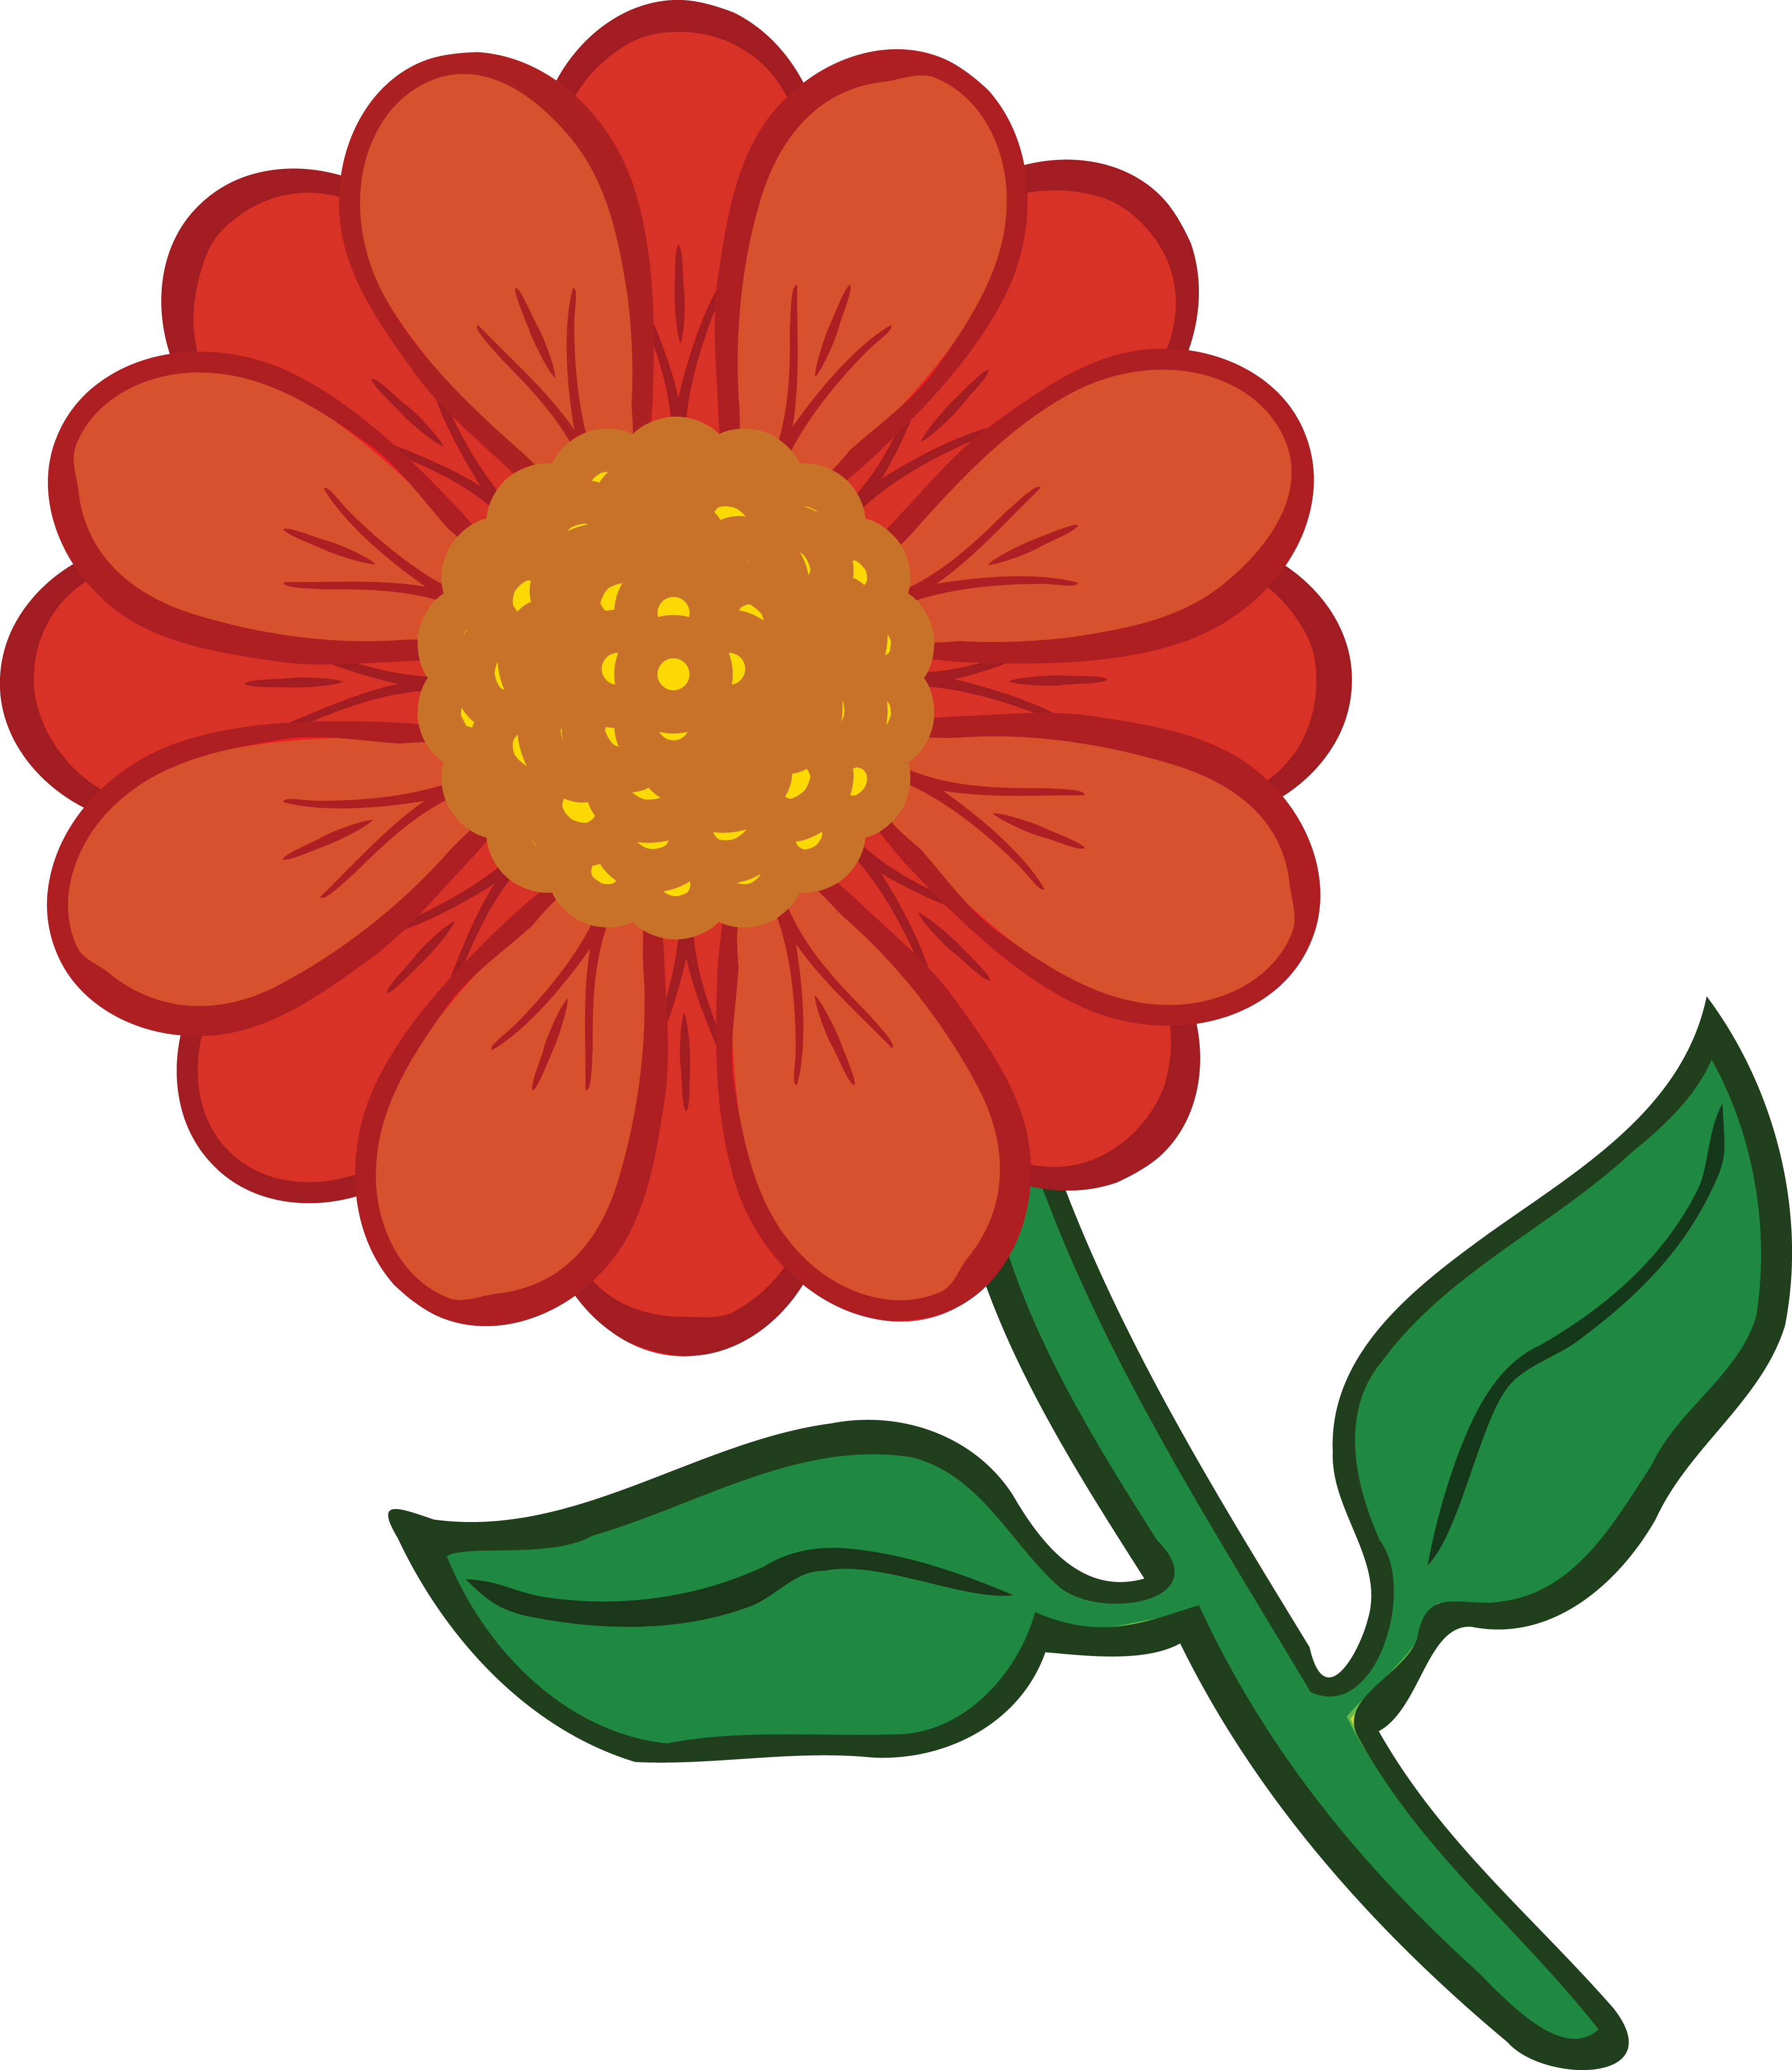 Free Clipart Of A Daisy Flower